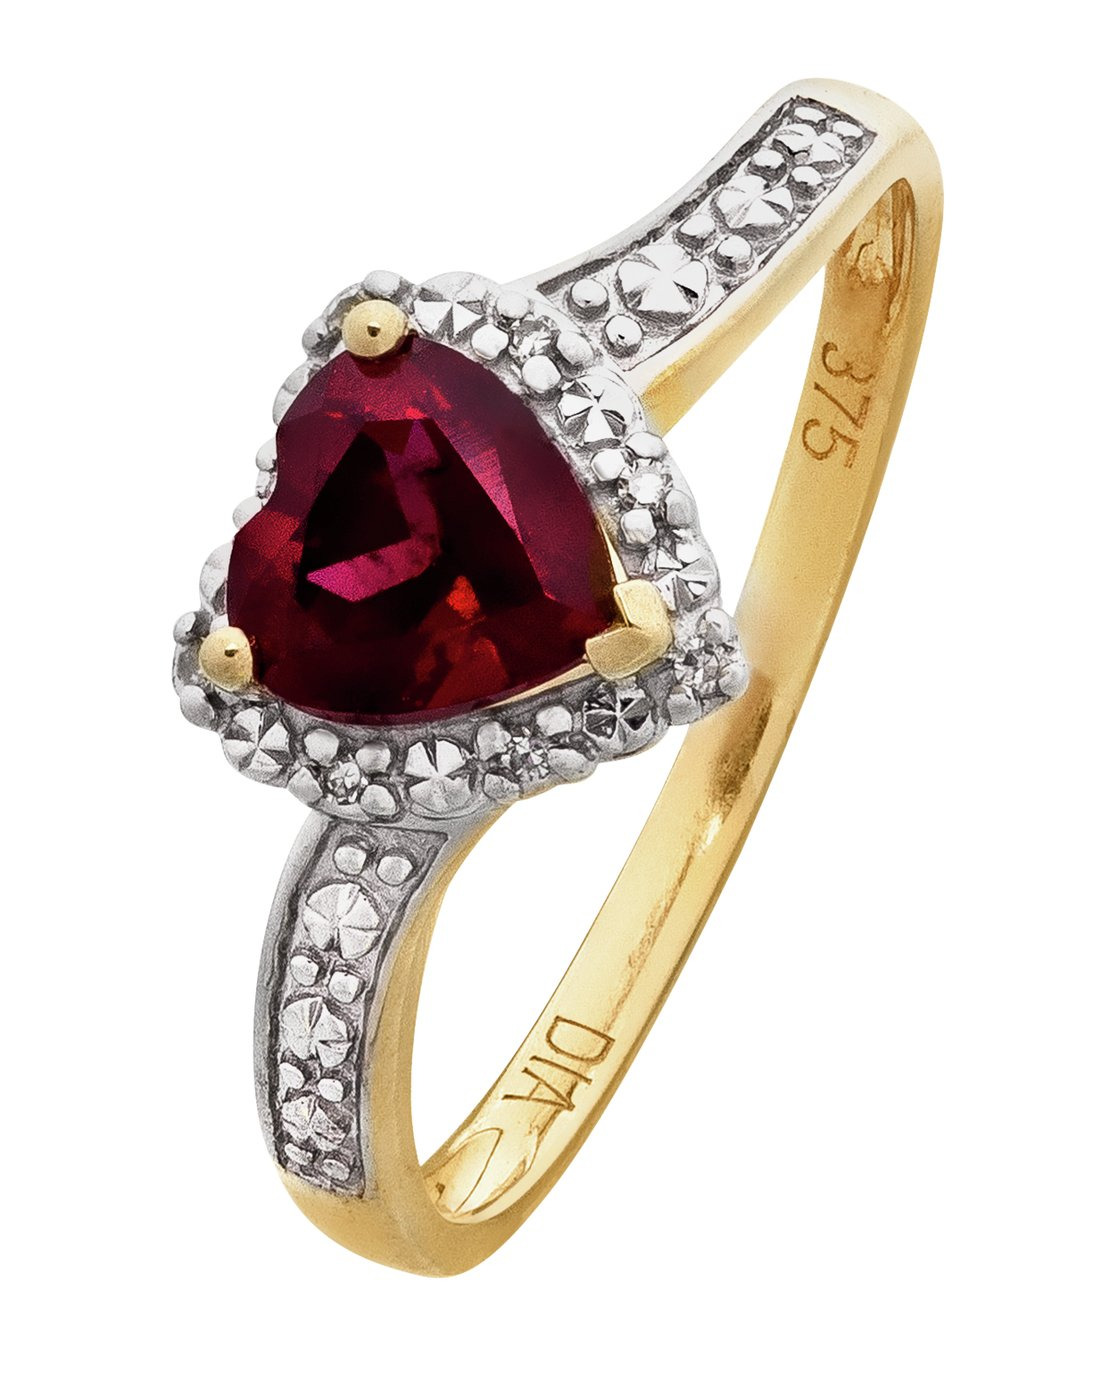 Revere 9ct Gold Ruby and Diamond Accent Heart Ring - N